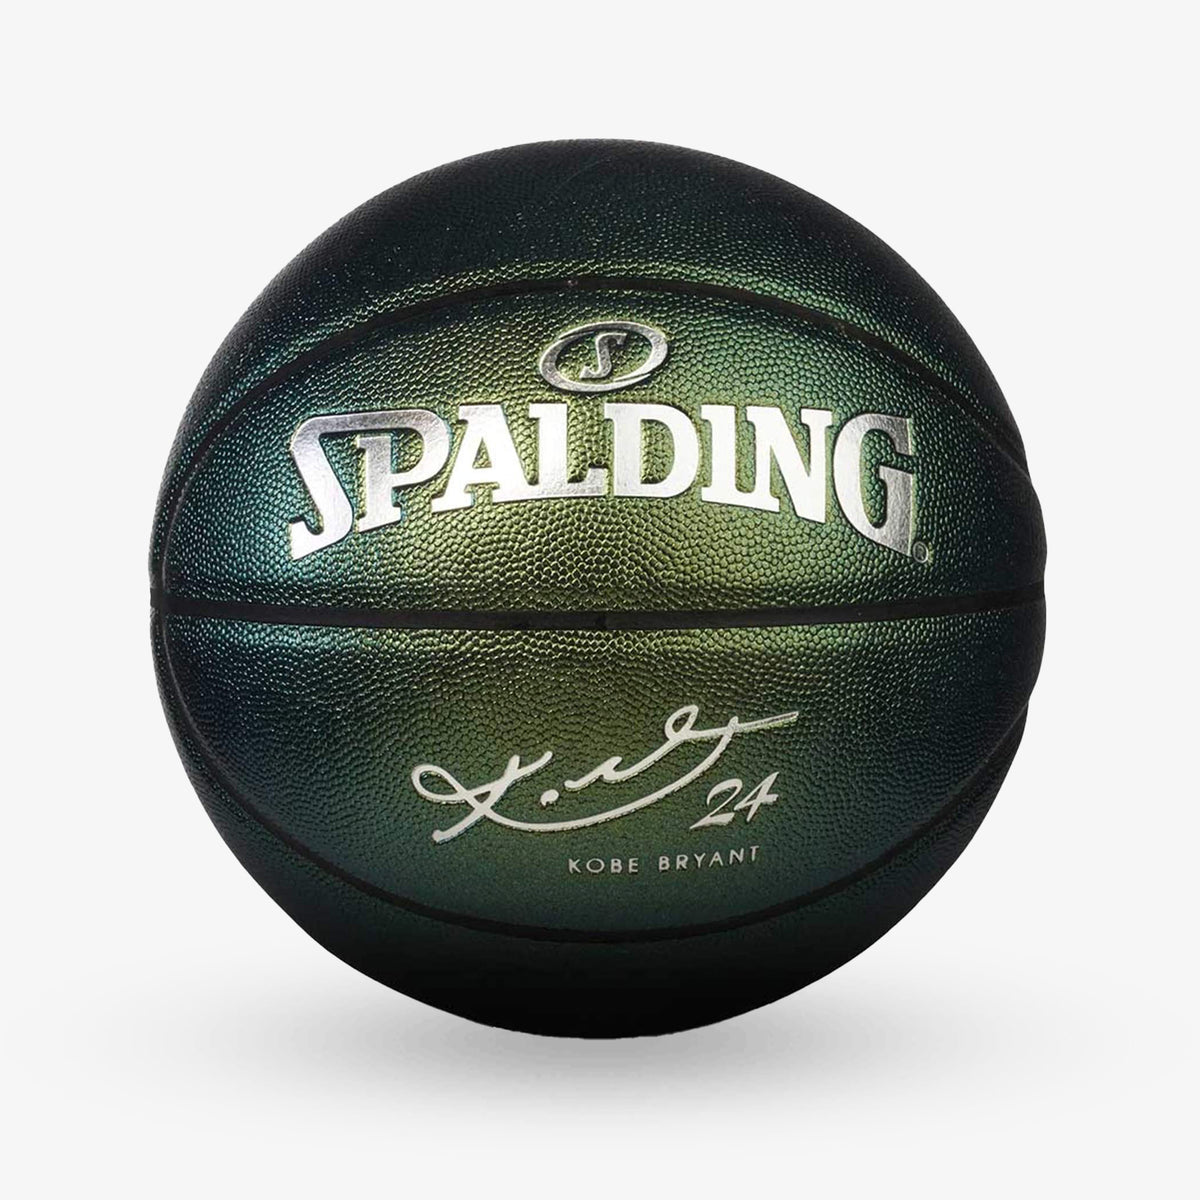 Spalding Kobe Bryant Indoor/Outdoor Basketball - Green - Size 7